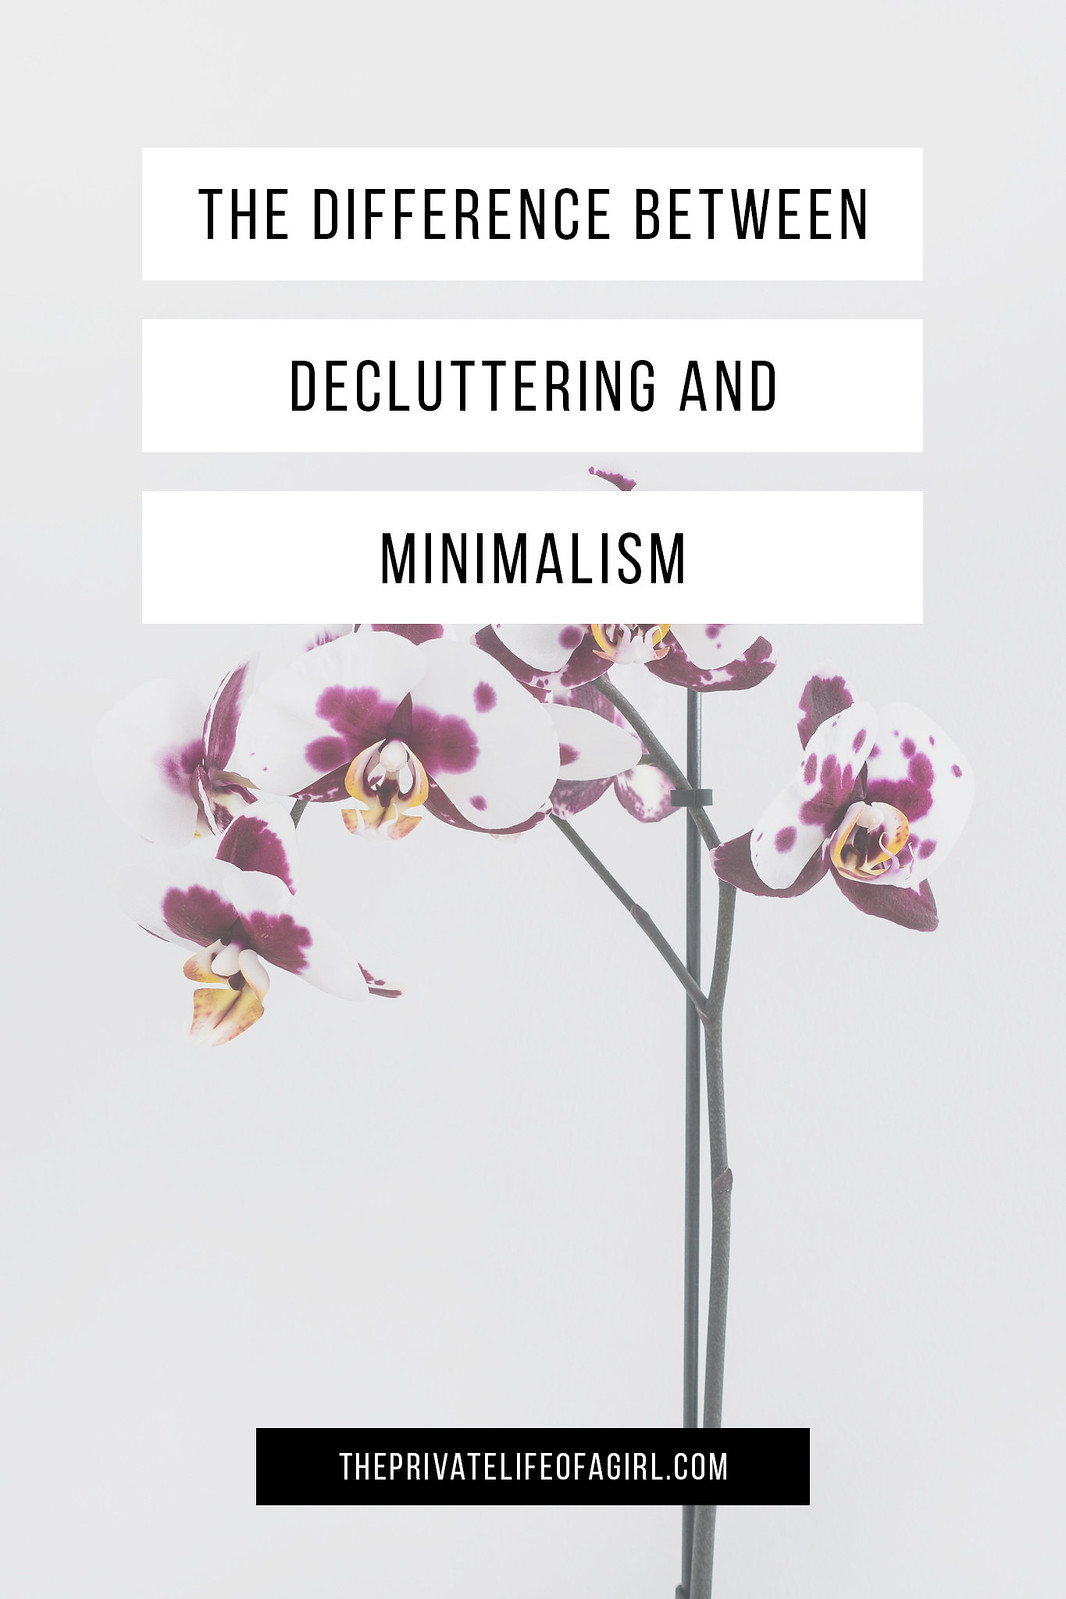 The Difference Between Minimalism and Decluttering